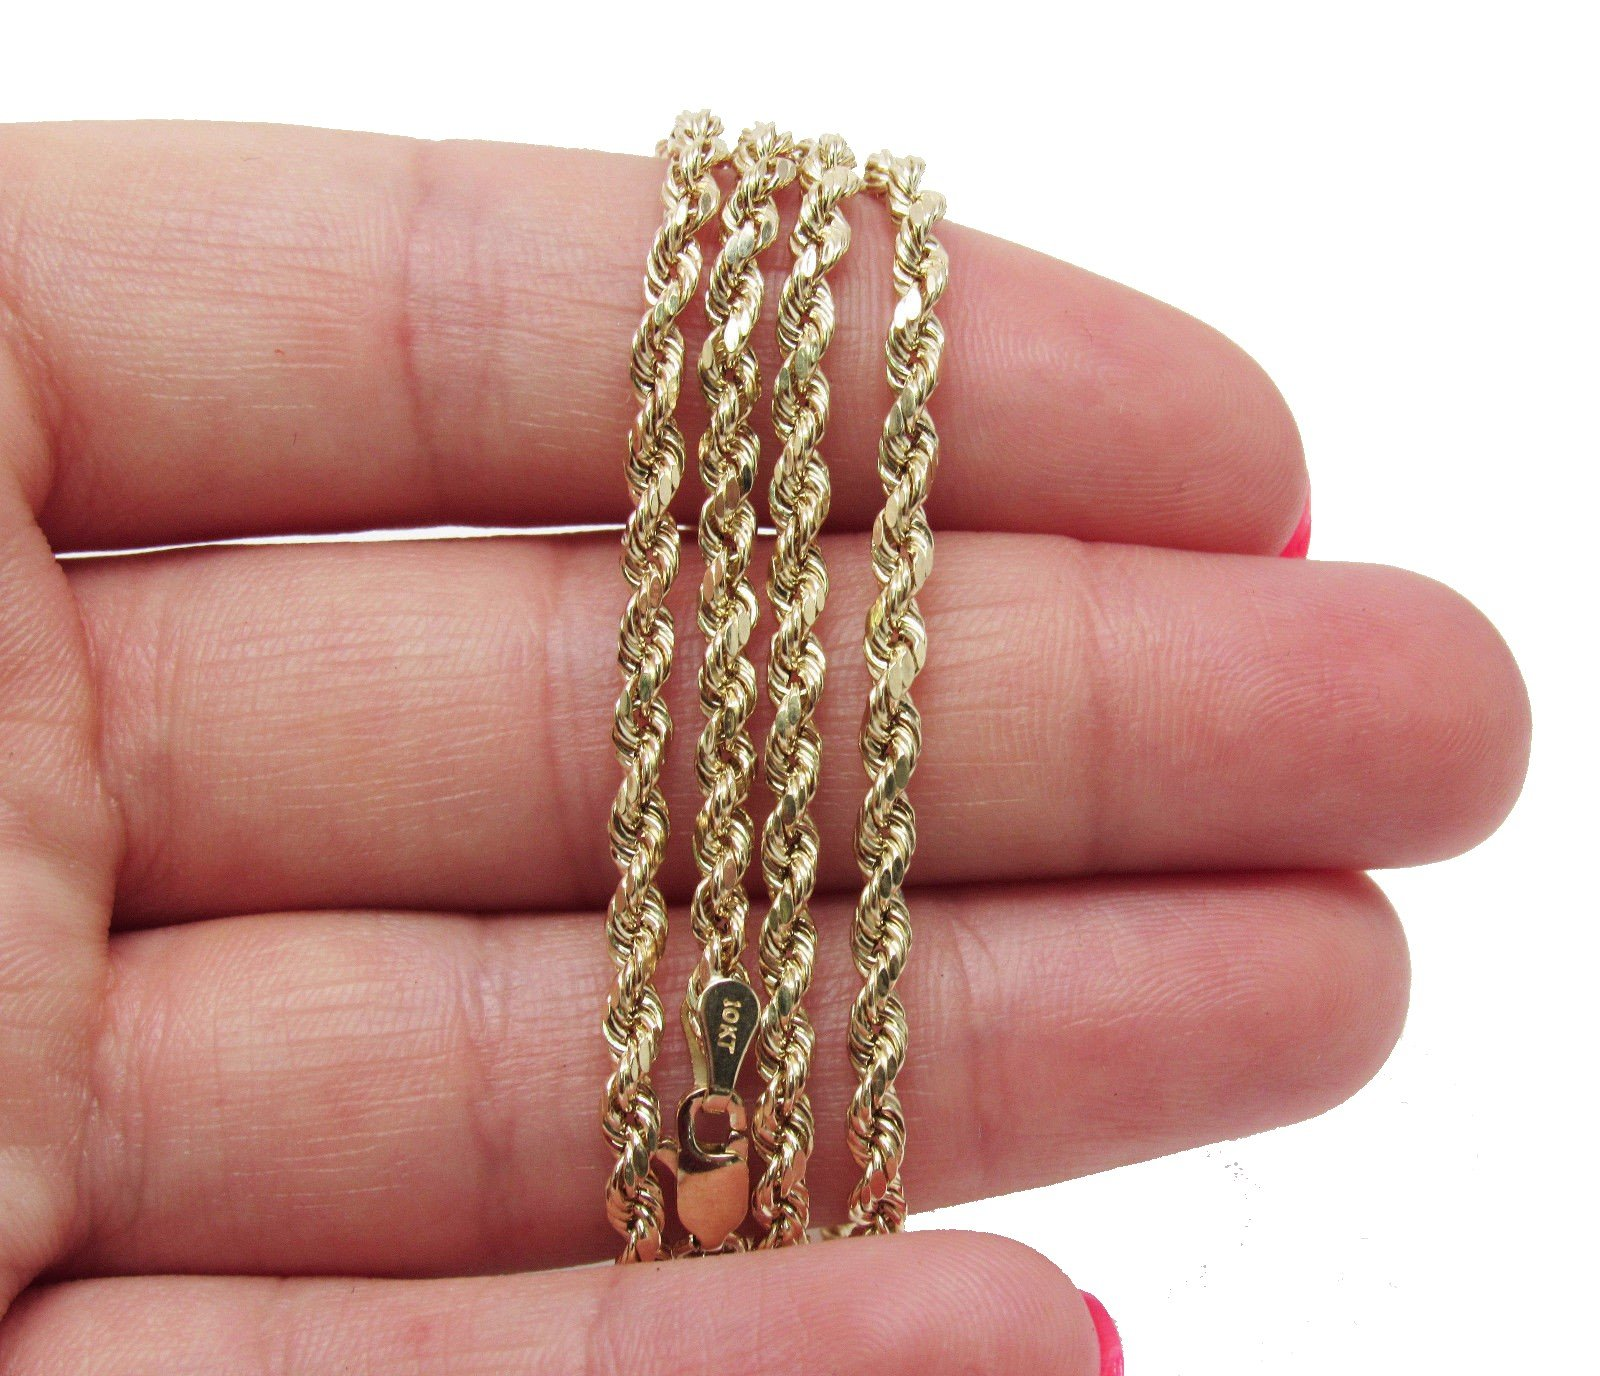 10K Yellow Gold Italian Rope Chain 30'' 3mm wide Hollow 7.4 Grams by Melano Creation (Image #3)